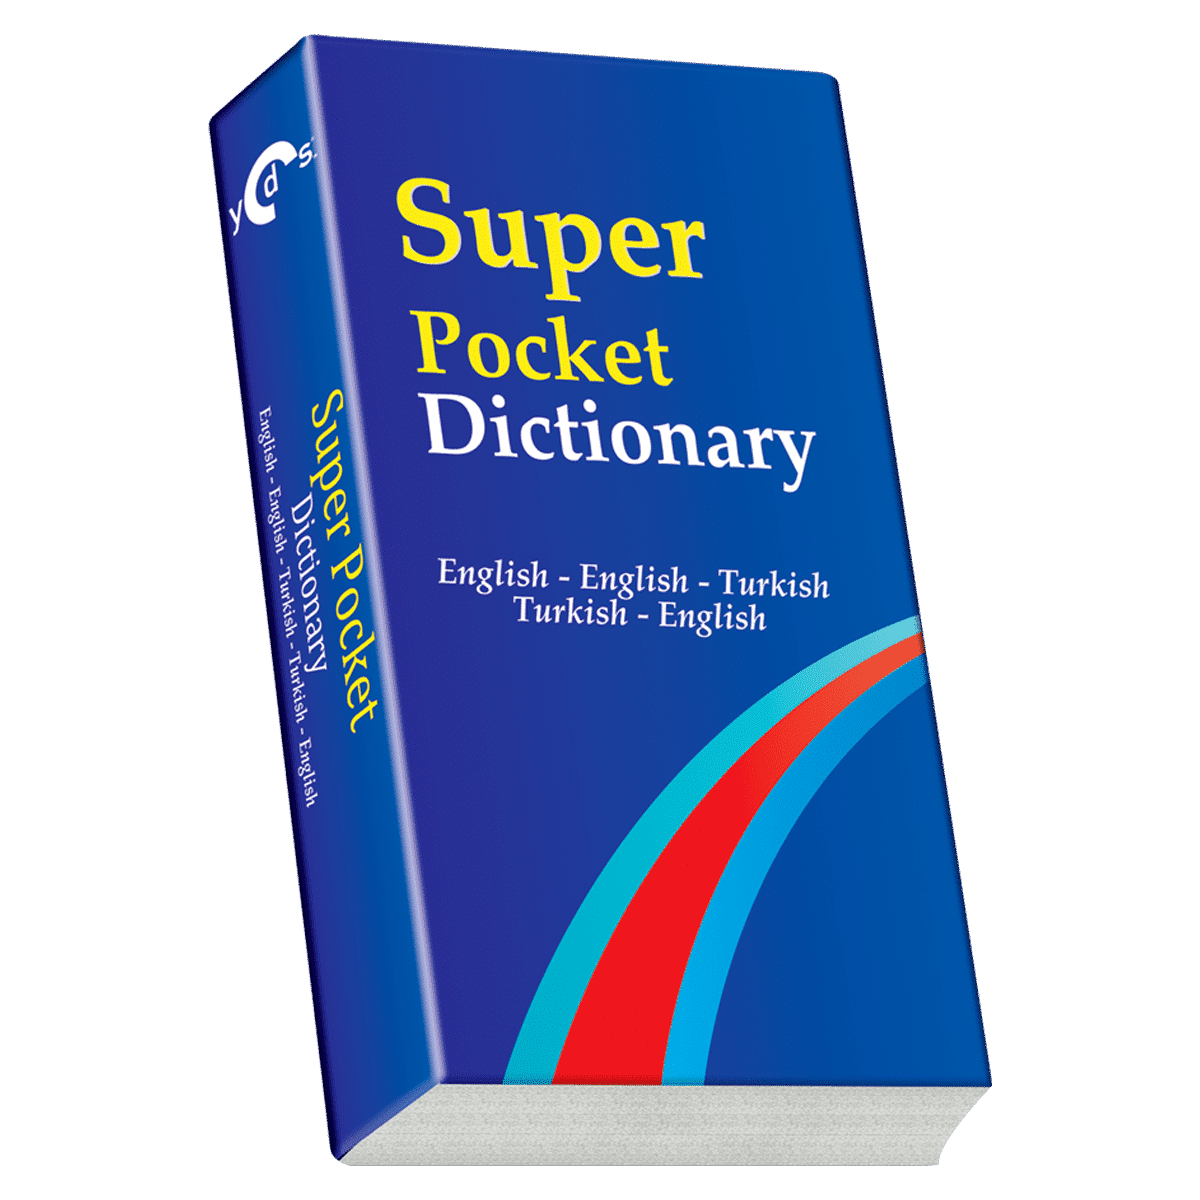 Super Pocket Dictionary super pocket dictionary Super Pocket Dictionary super pocket 001 min 1200x1200